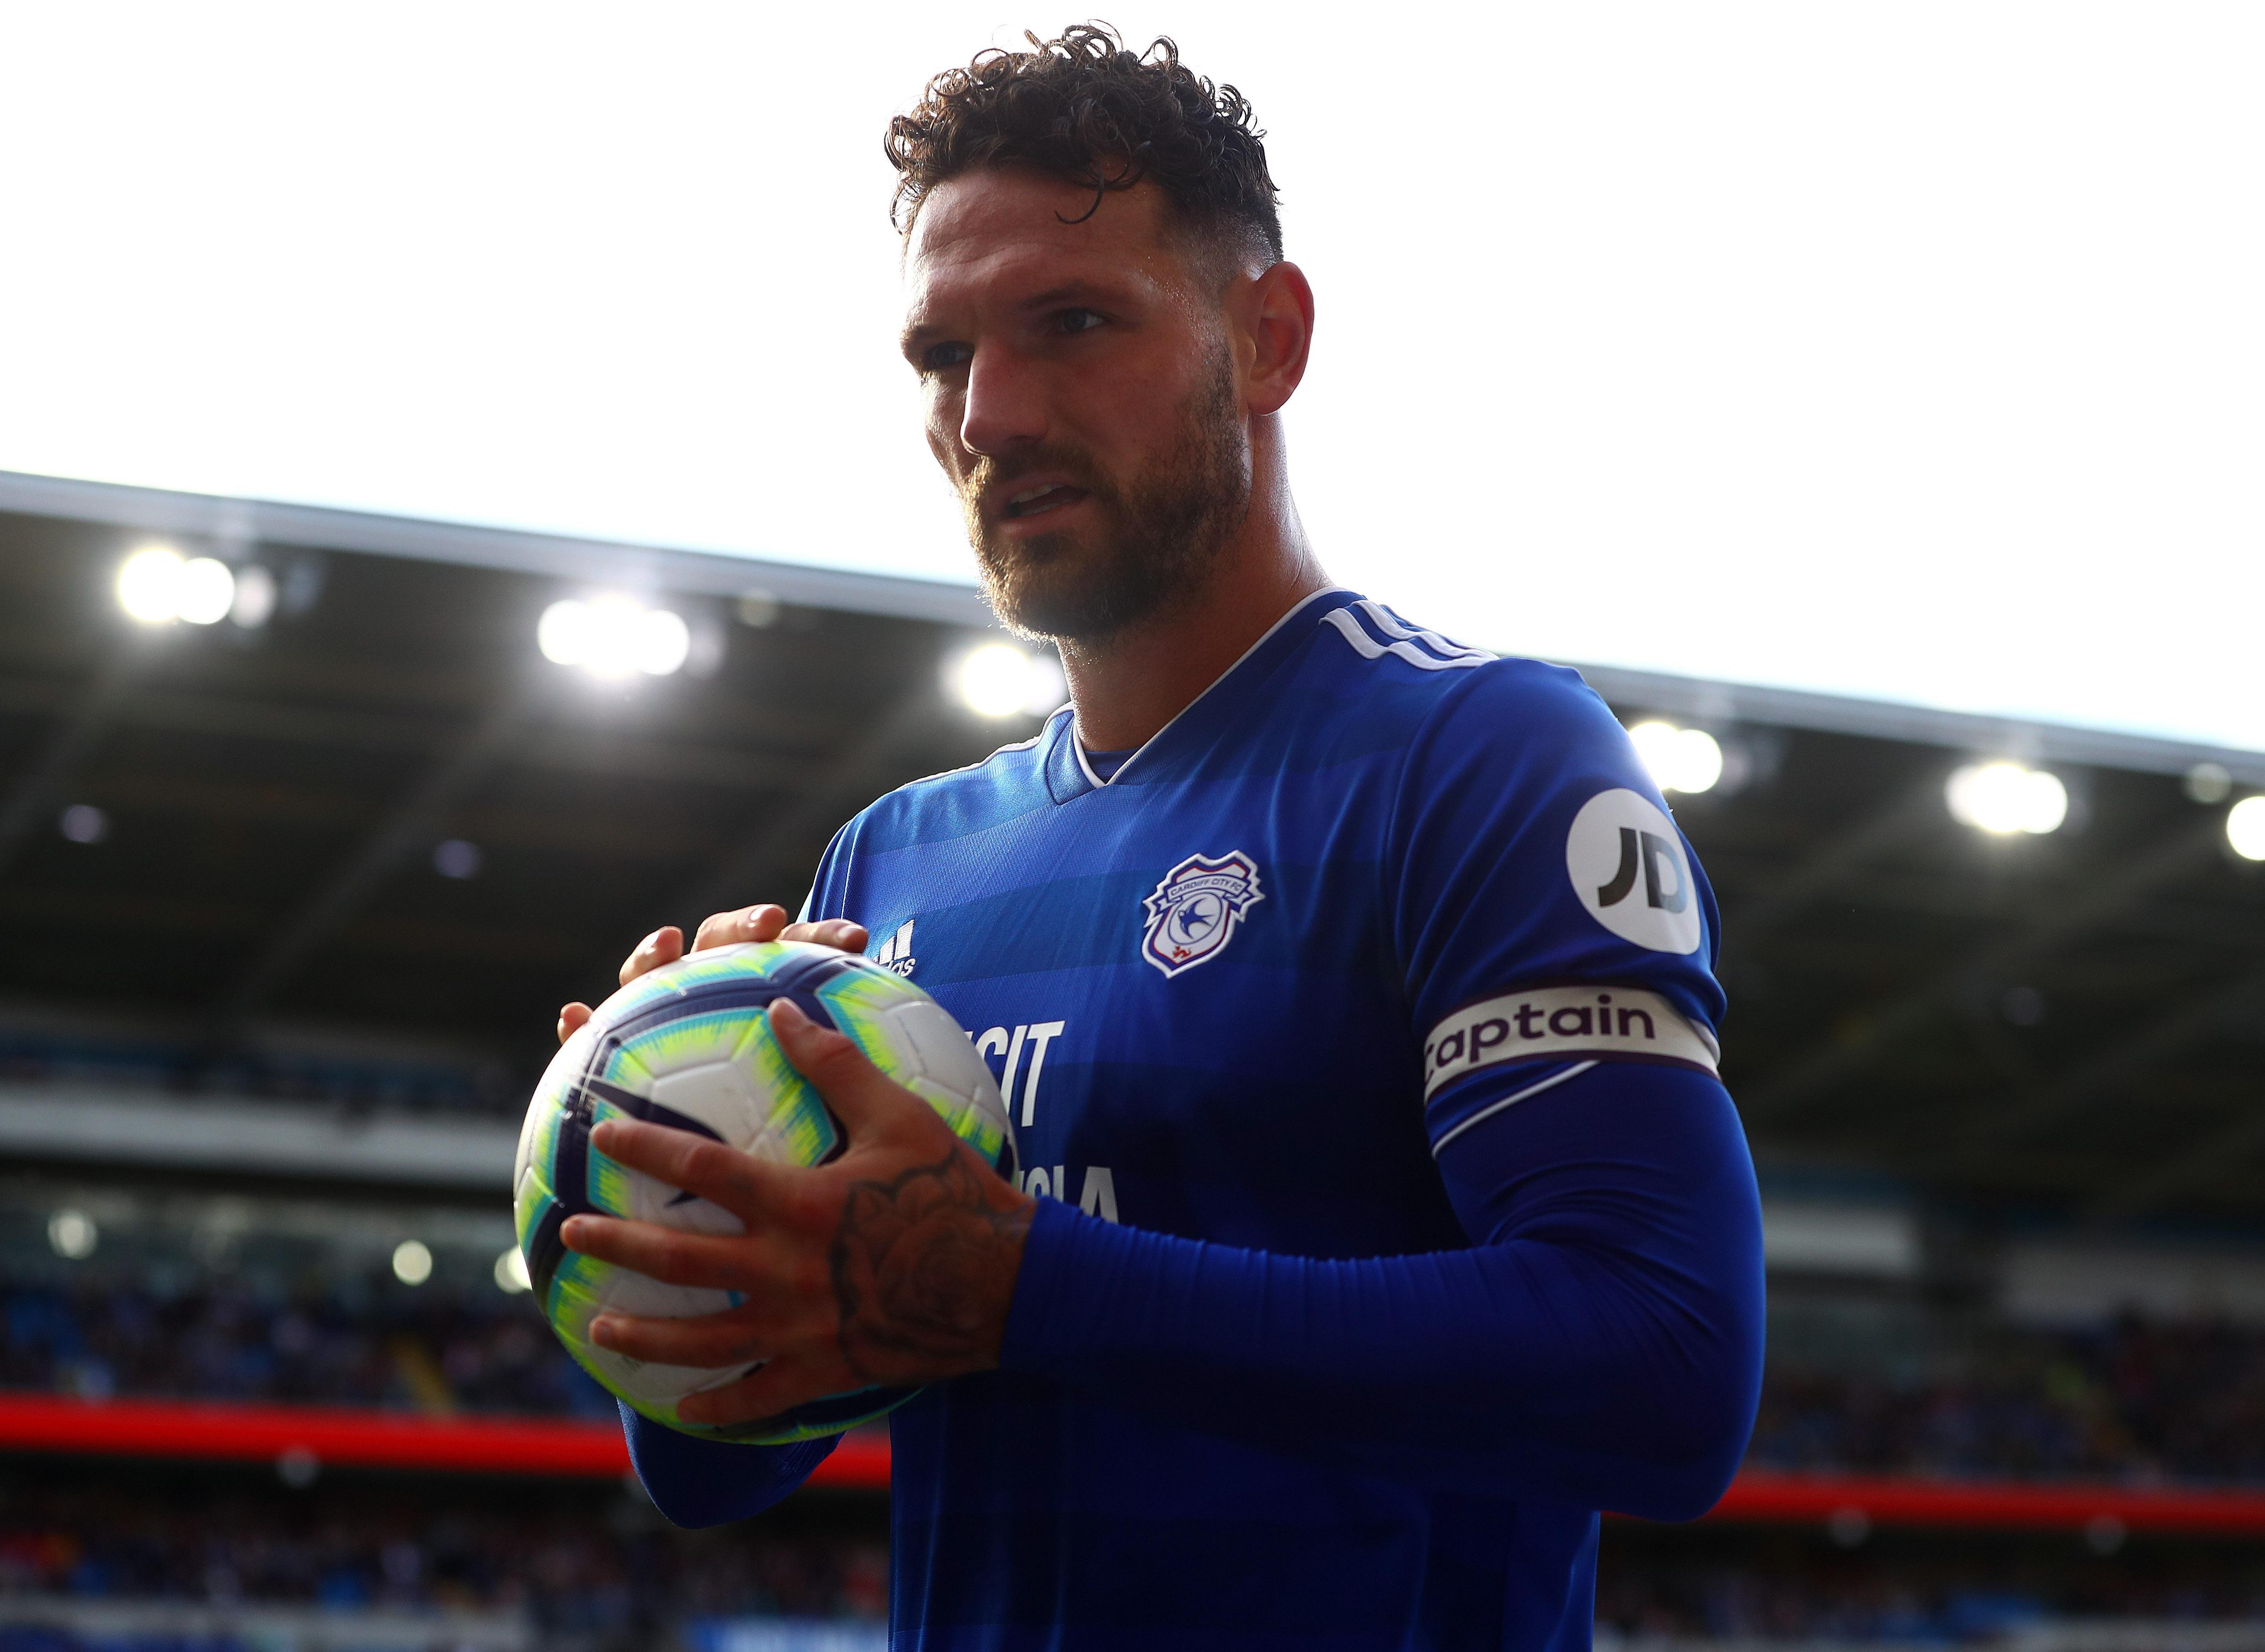 Sean Morrison spent eight minutes taking 20 throw-ins during the clash between Cardiff and Burnley